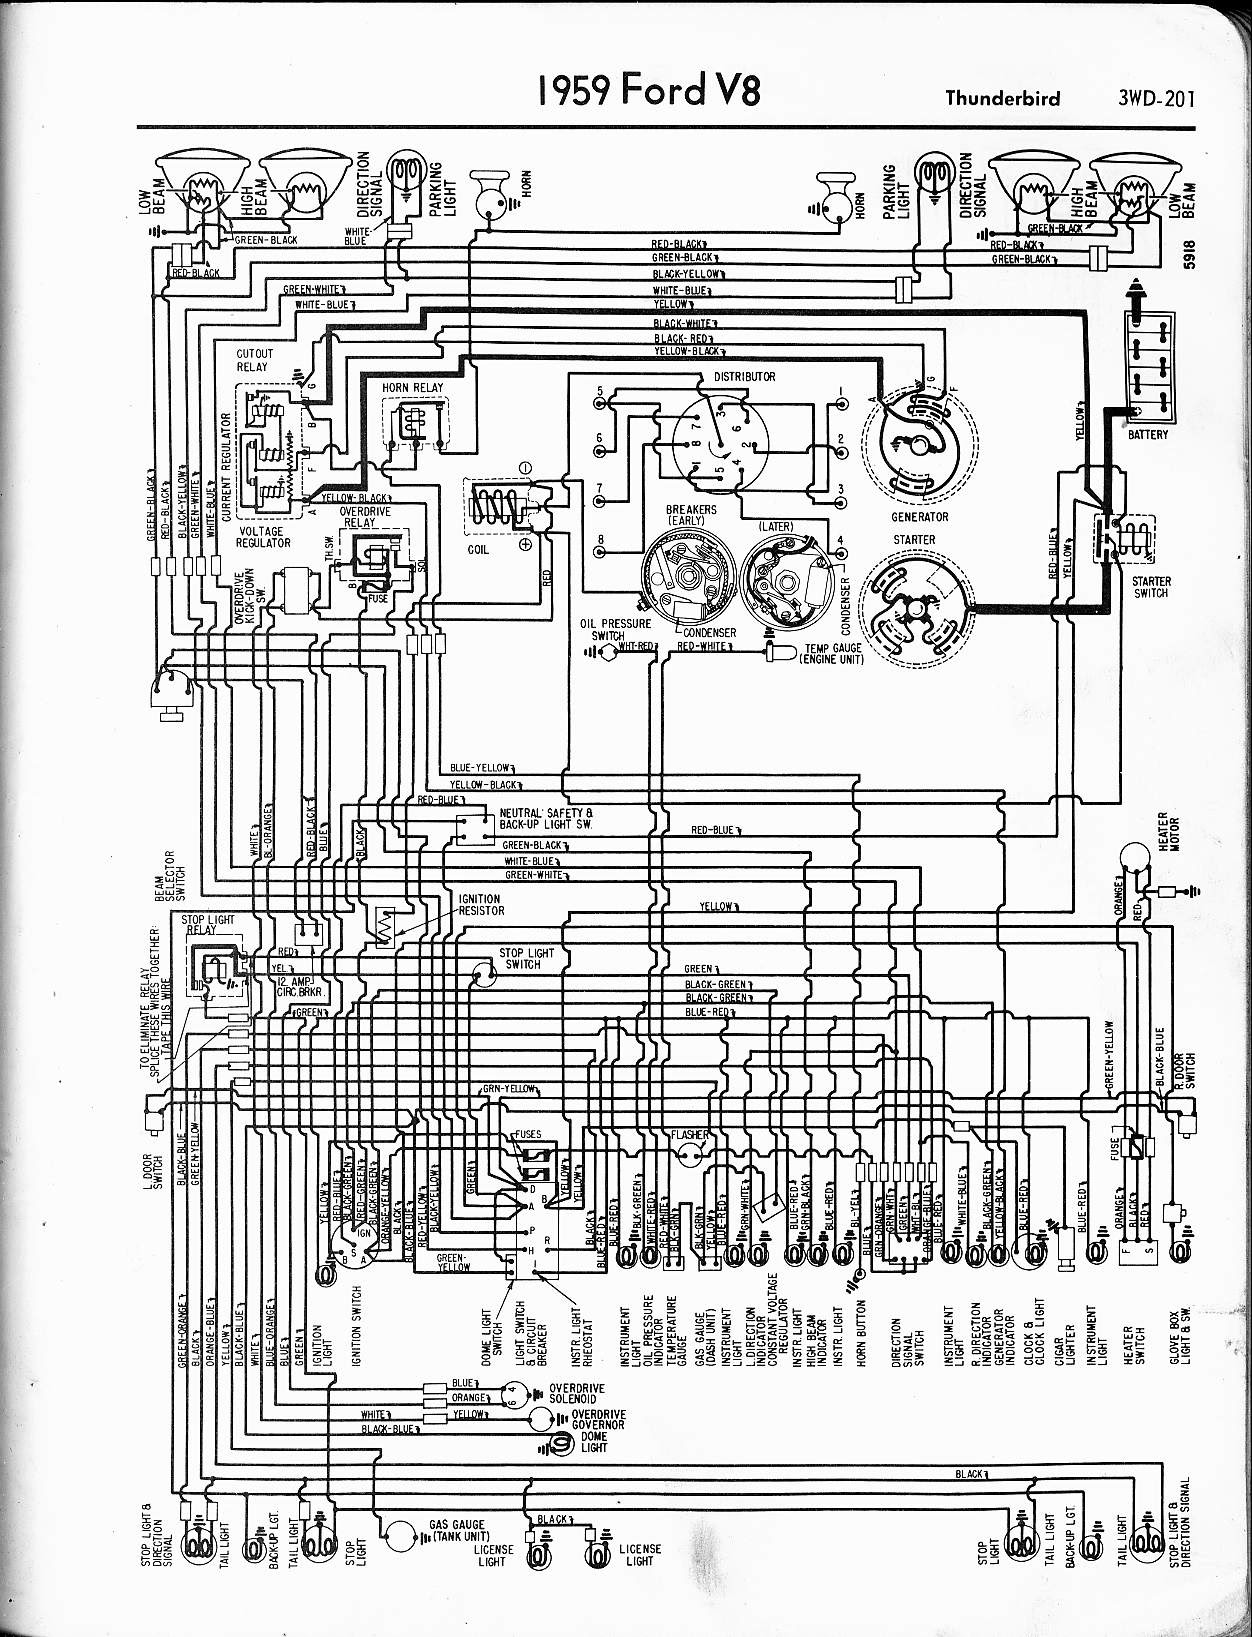 1959 Ford Ranchero Wiring Diagram Wiring Diagram Local A Local A Maceratadoc It